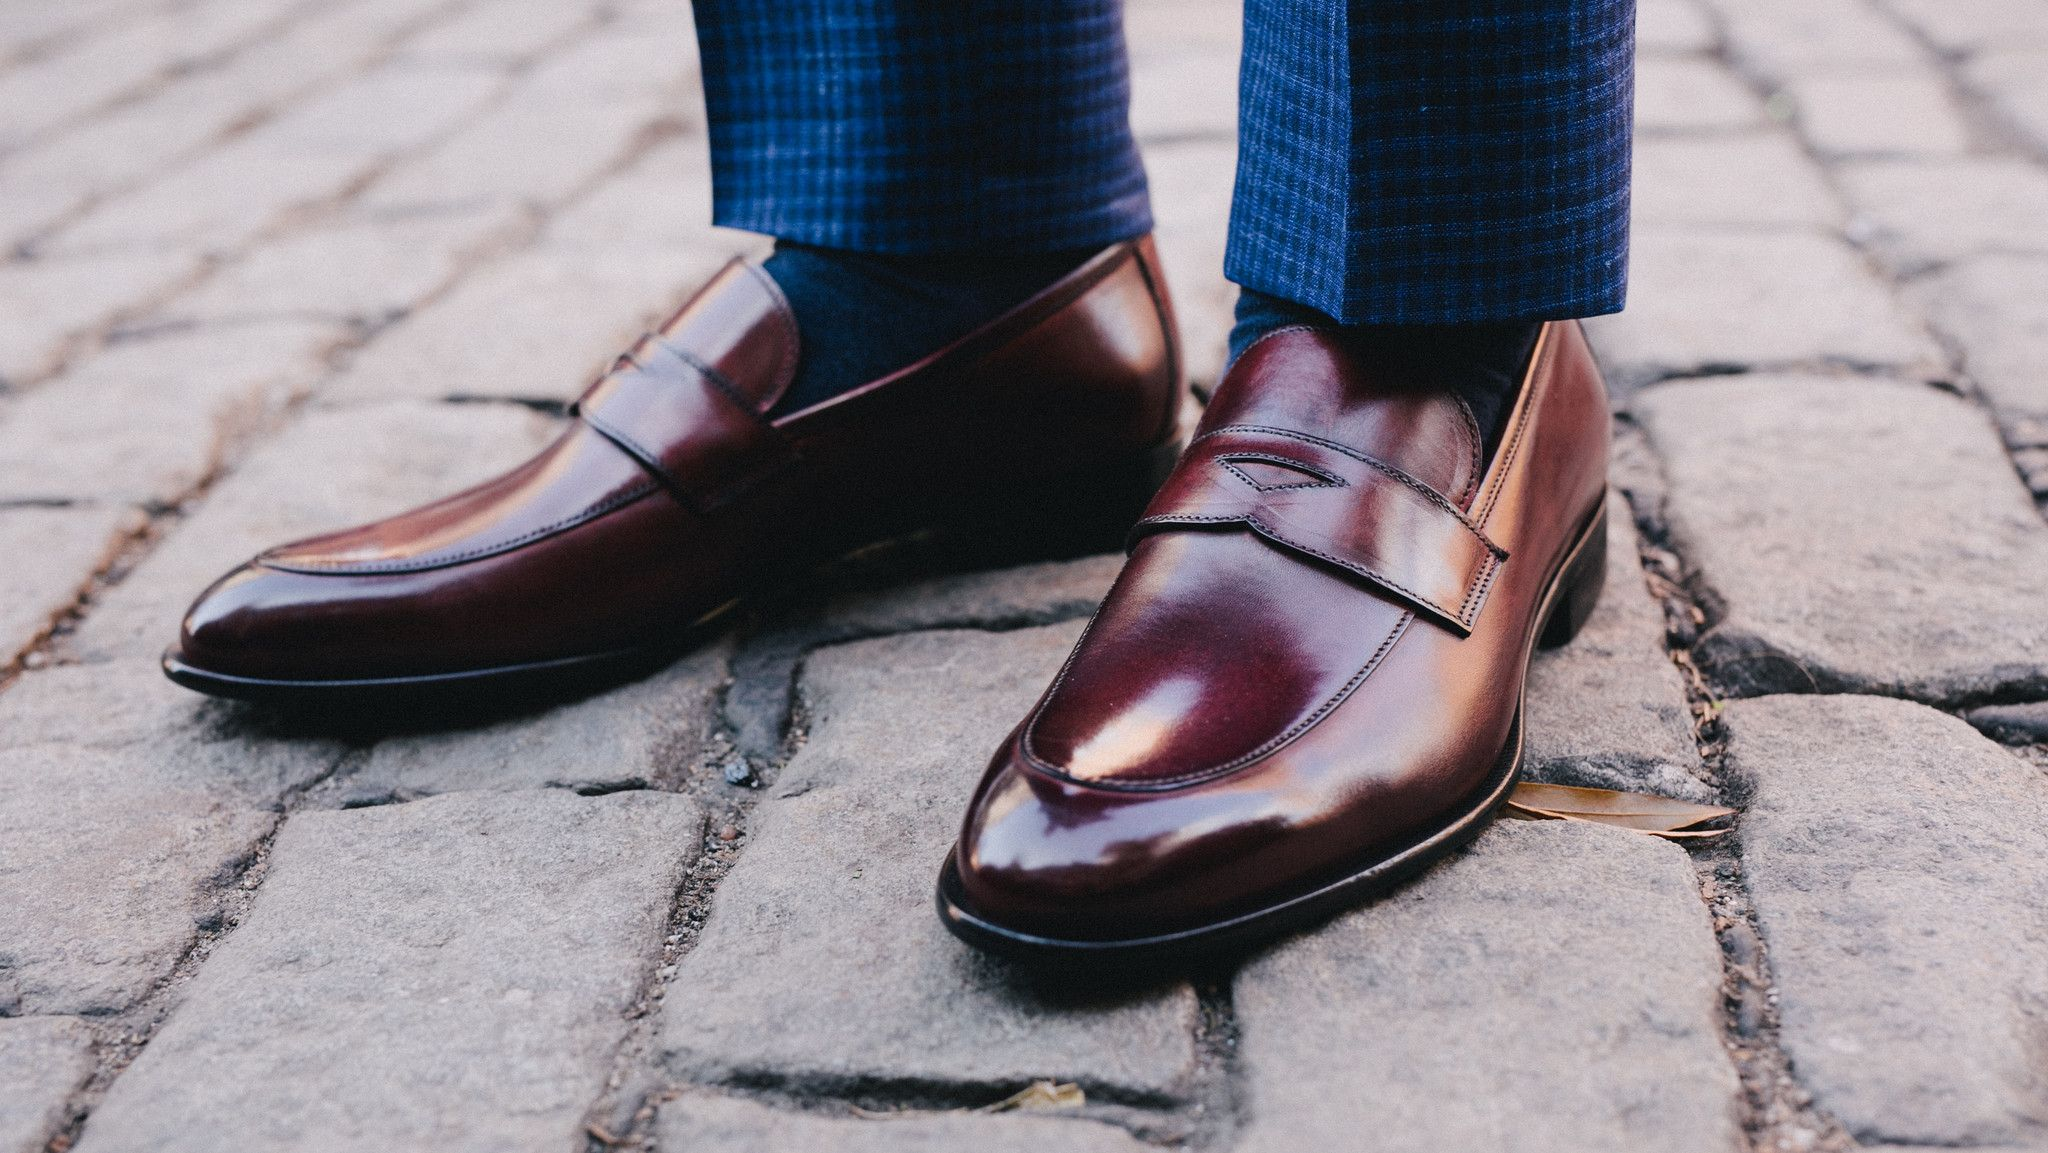 535388a47013a The Stewart Penny Loafer - Oxblood in 2019 | Mainly Loafers | Penny ...